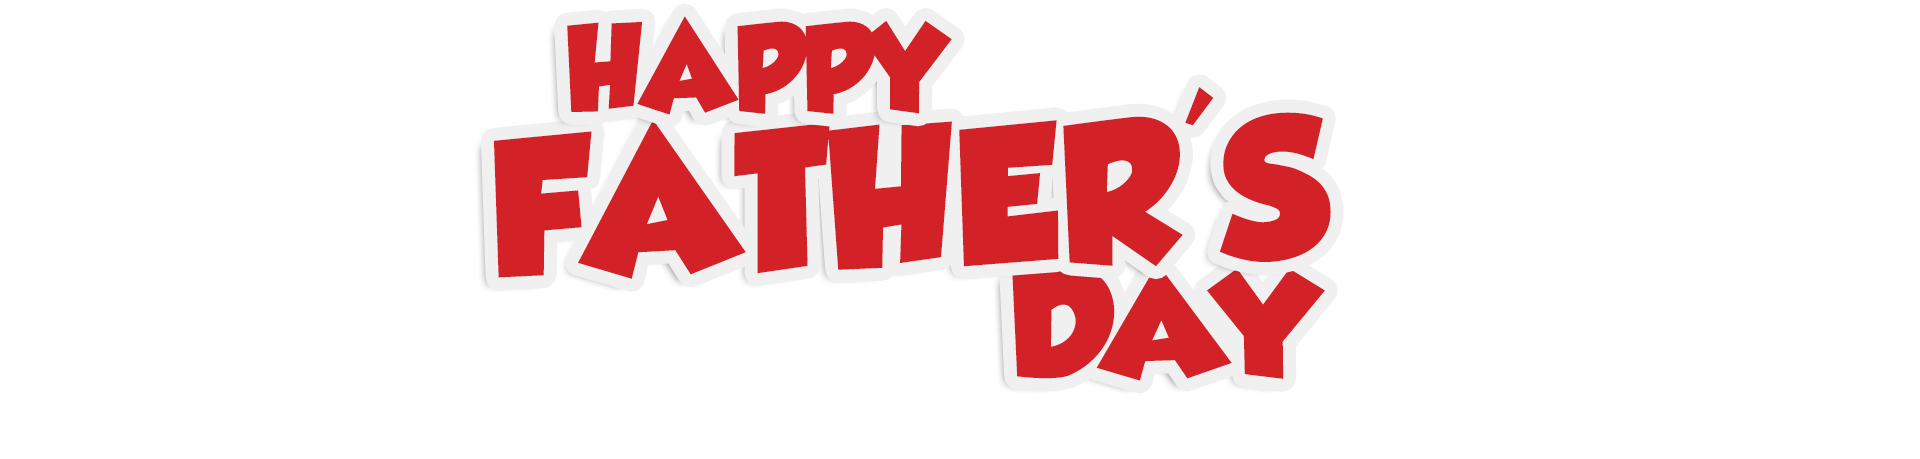 Fathers Day HD PNG - 96356